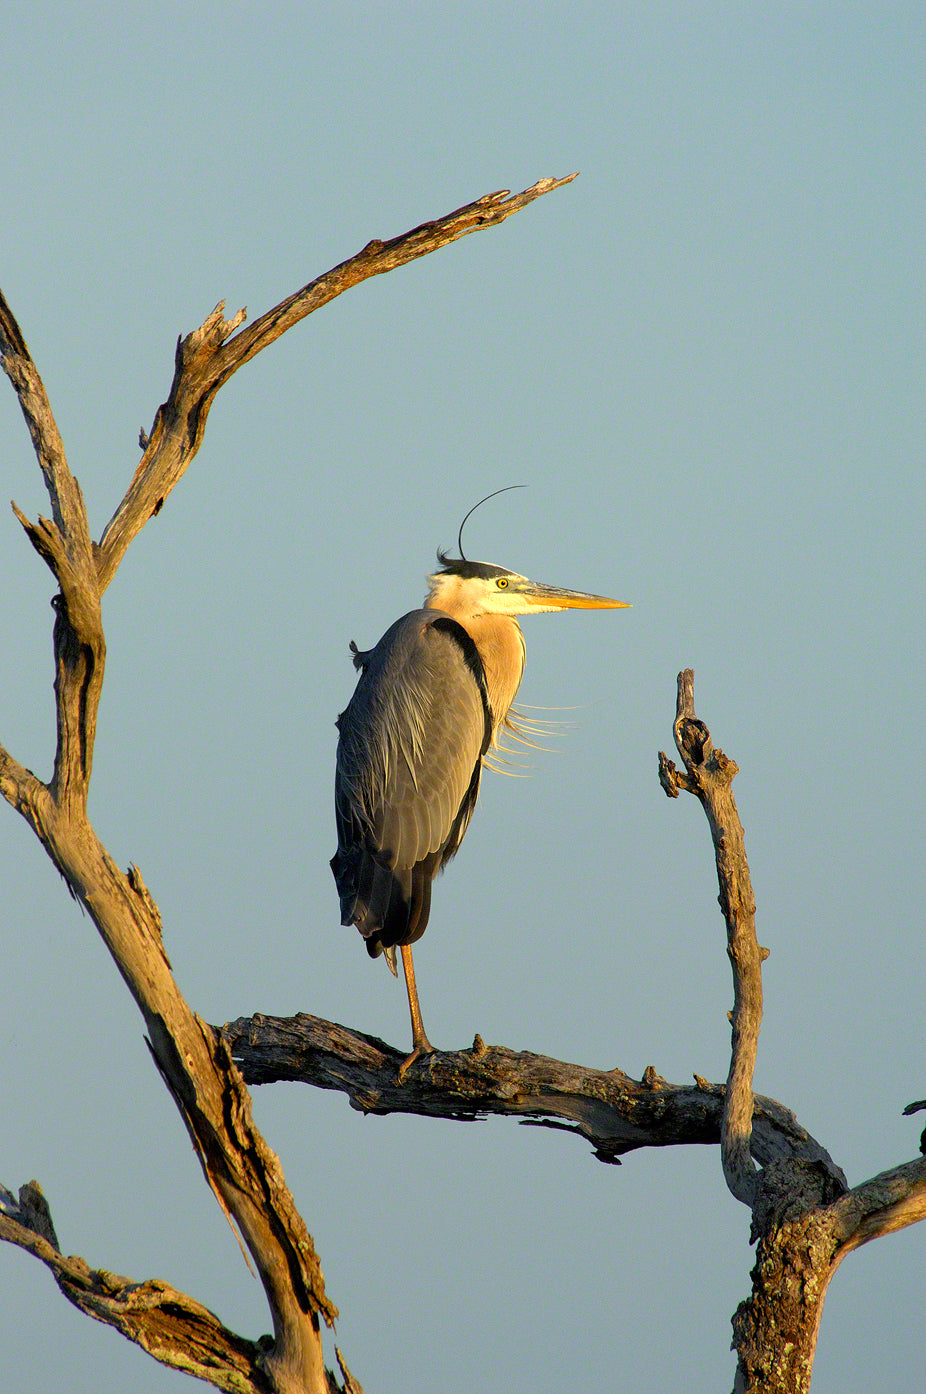 A photo of a great blue heron on a dead tree at sunset